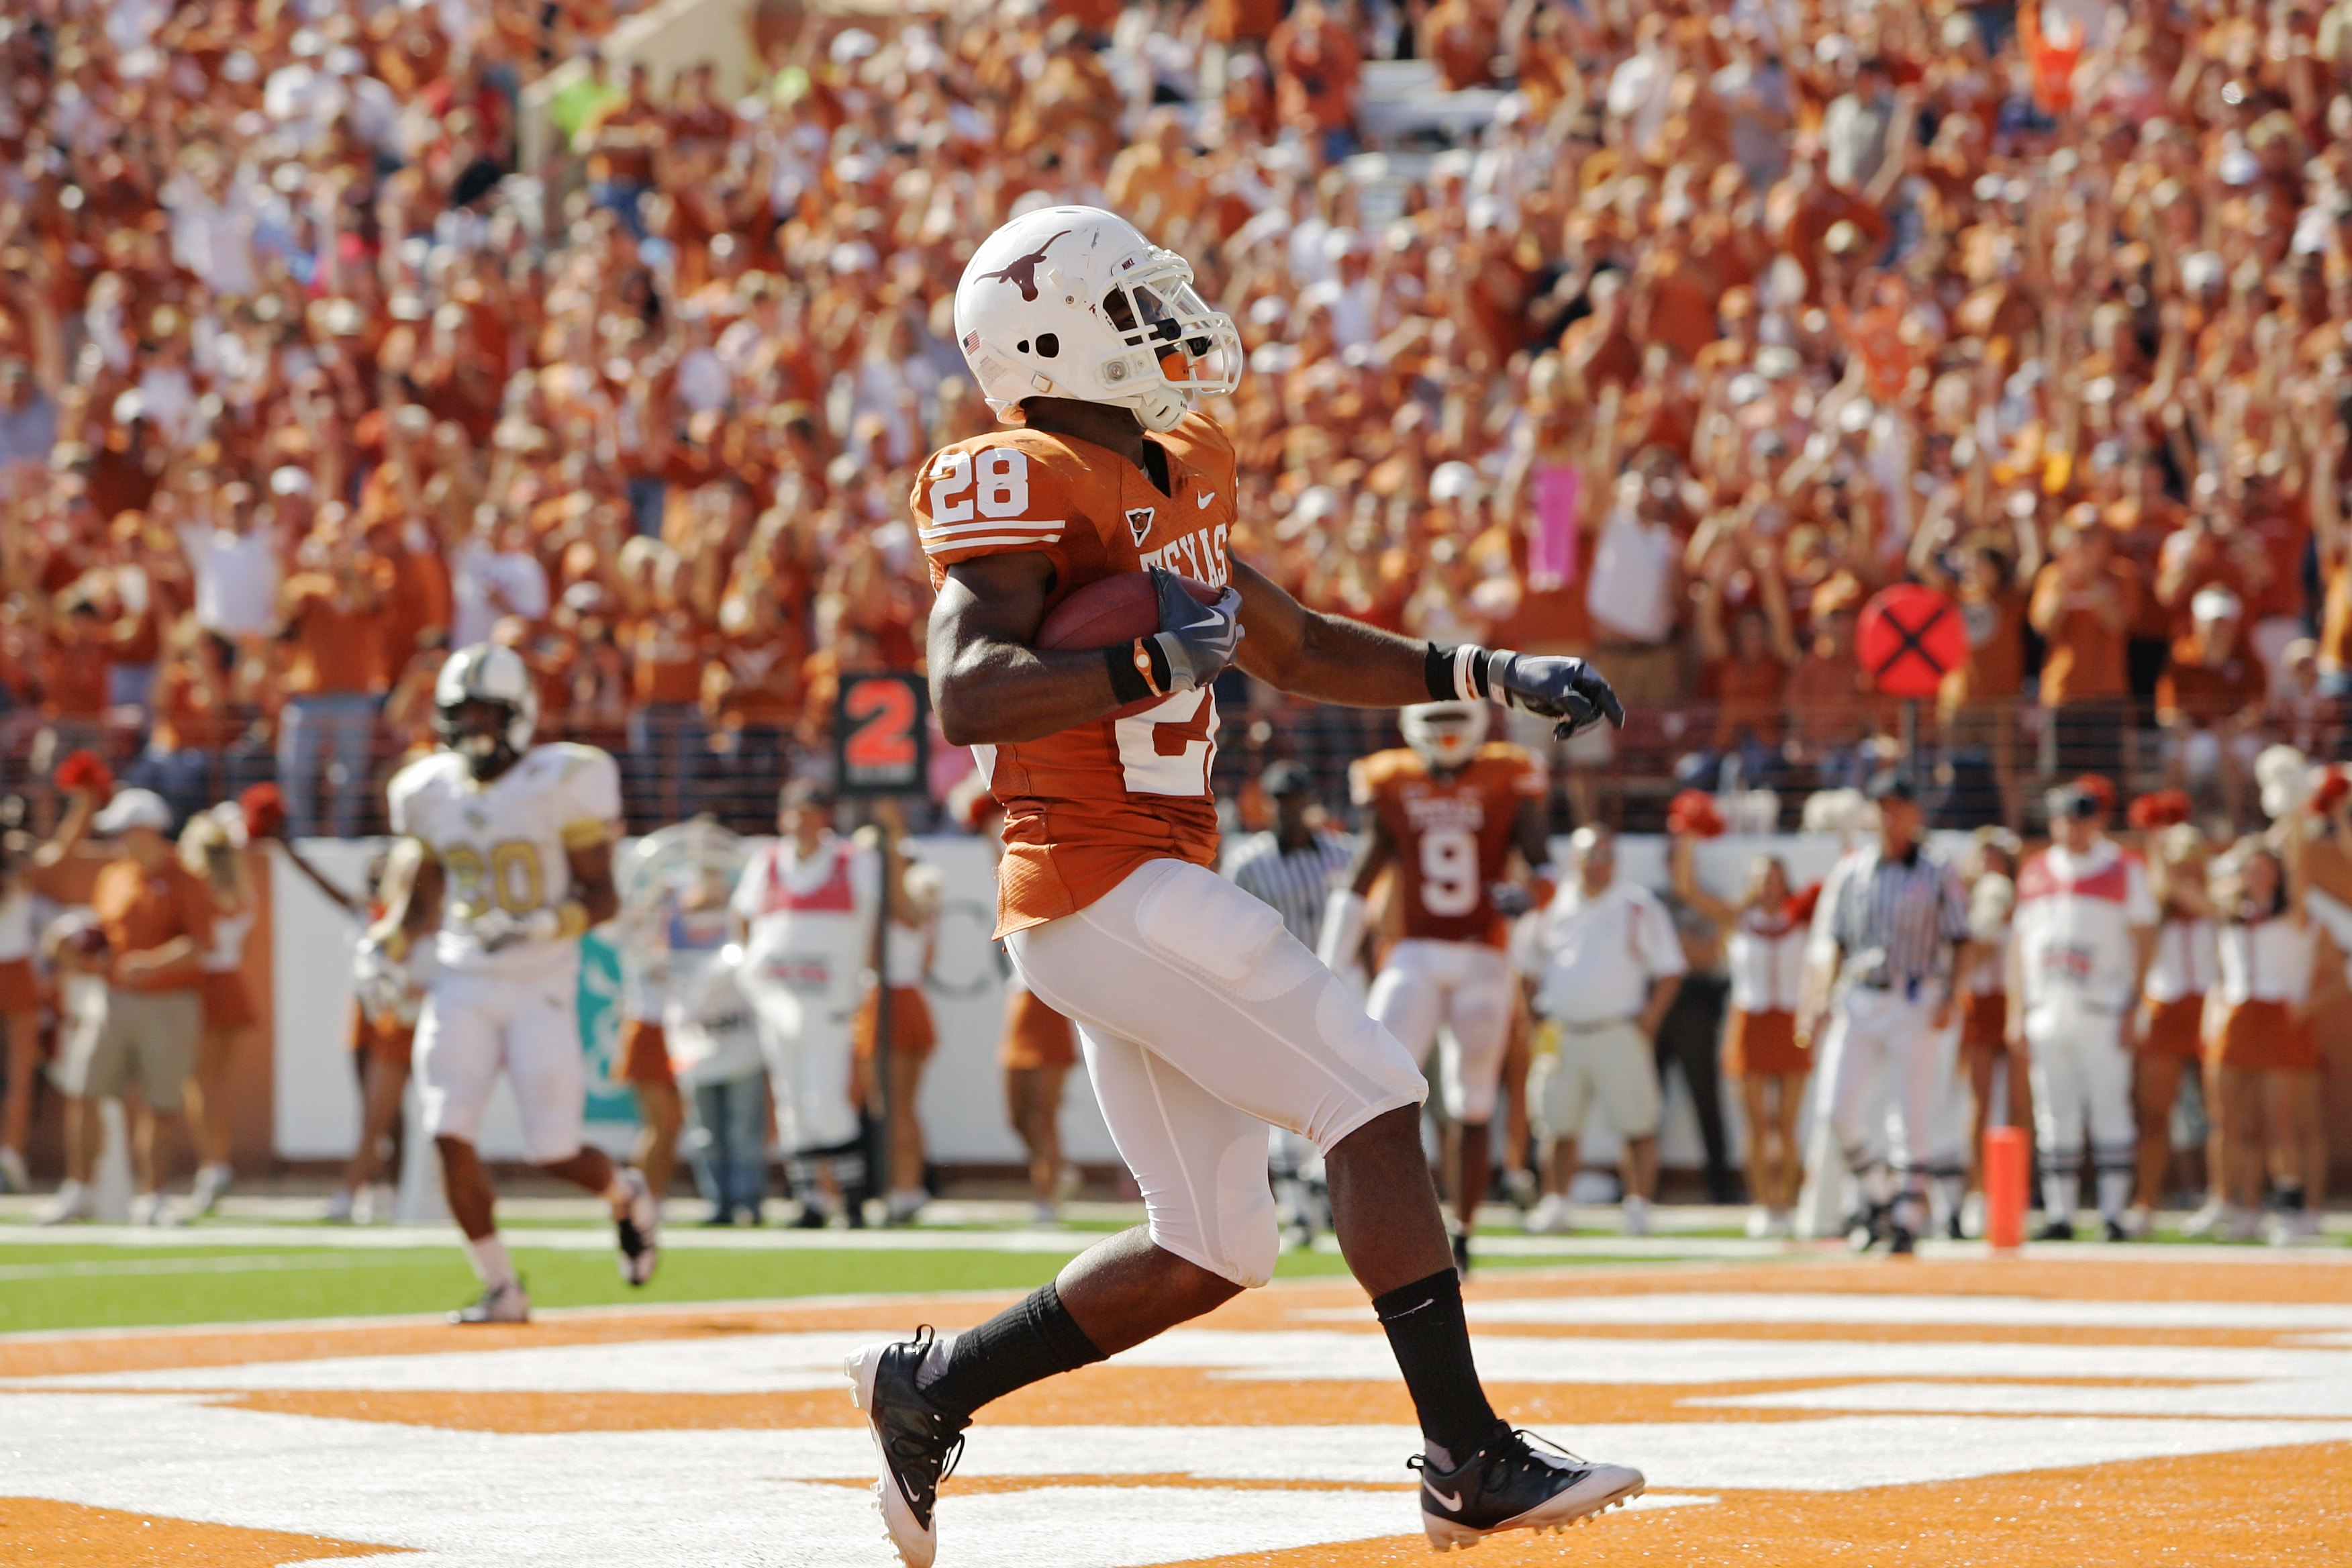 AUSTIN, TX - NOVEMBER 07:  Running back Fozzy Whittaker #28 of the Texas Longhorns scores a touchdown against the UCF Knights in the third quarter on November 7, 2009 at Darrell K Royal - Texas Memorial Stadium in Austin, Texas.  Texas won 35-3.  (Photo b